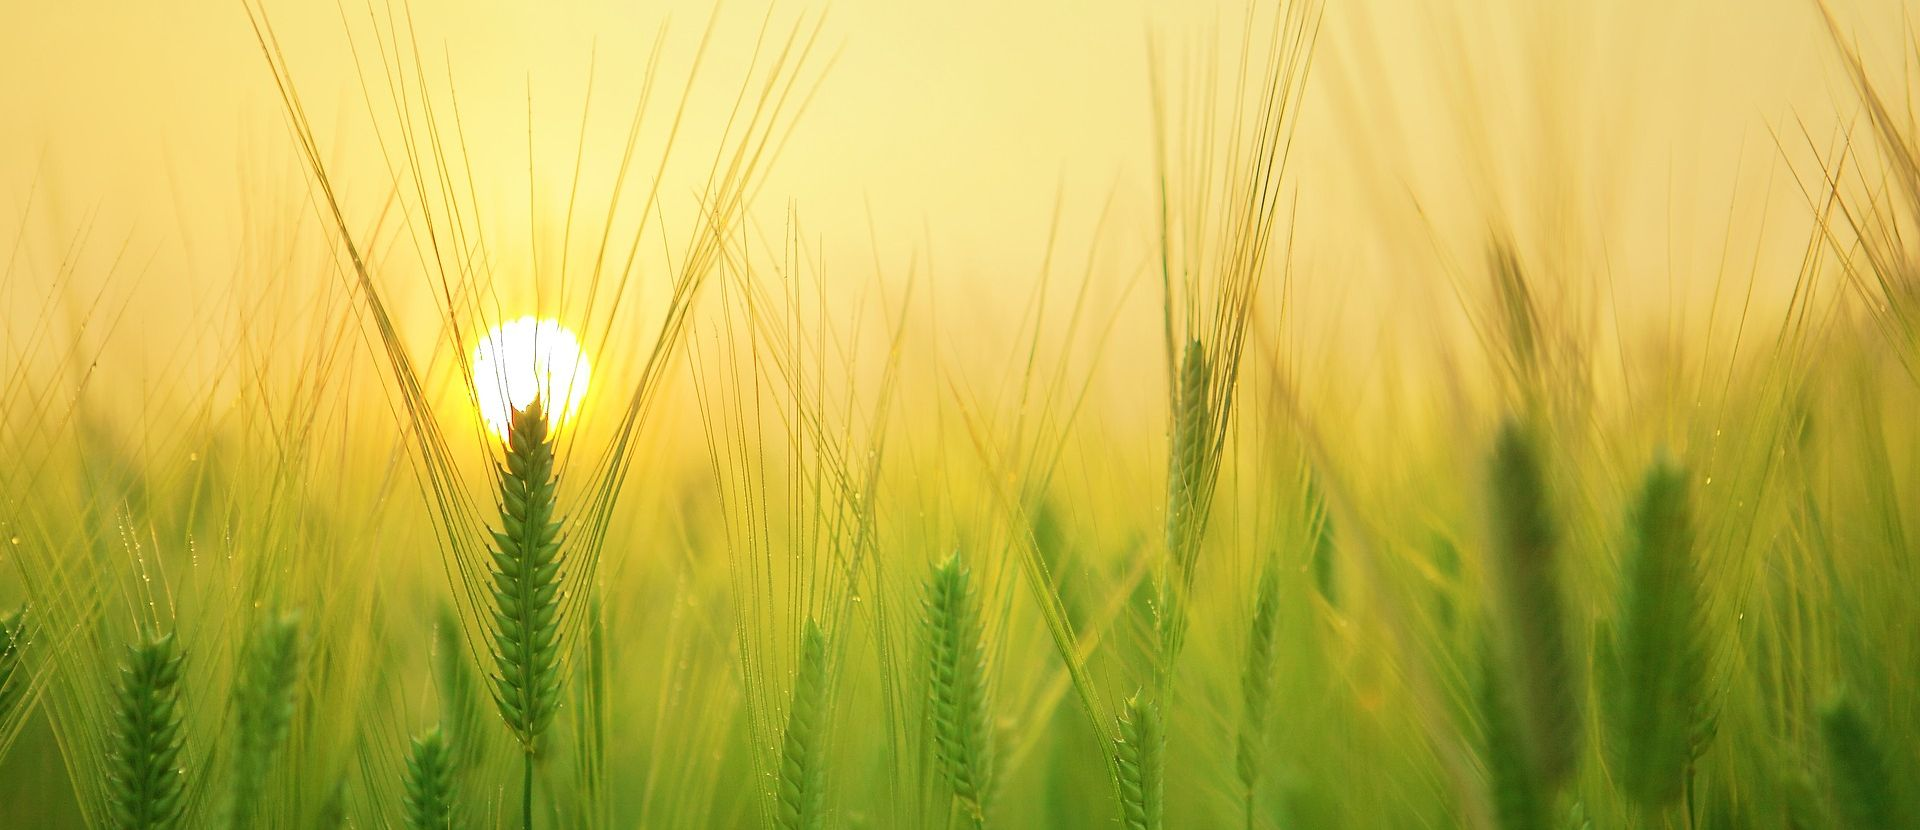 Farm tech startups on the rise to solve the crop forecasting challenge